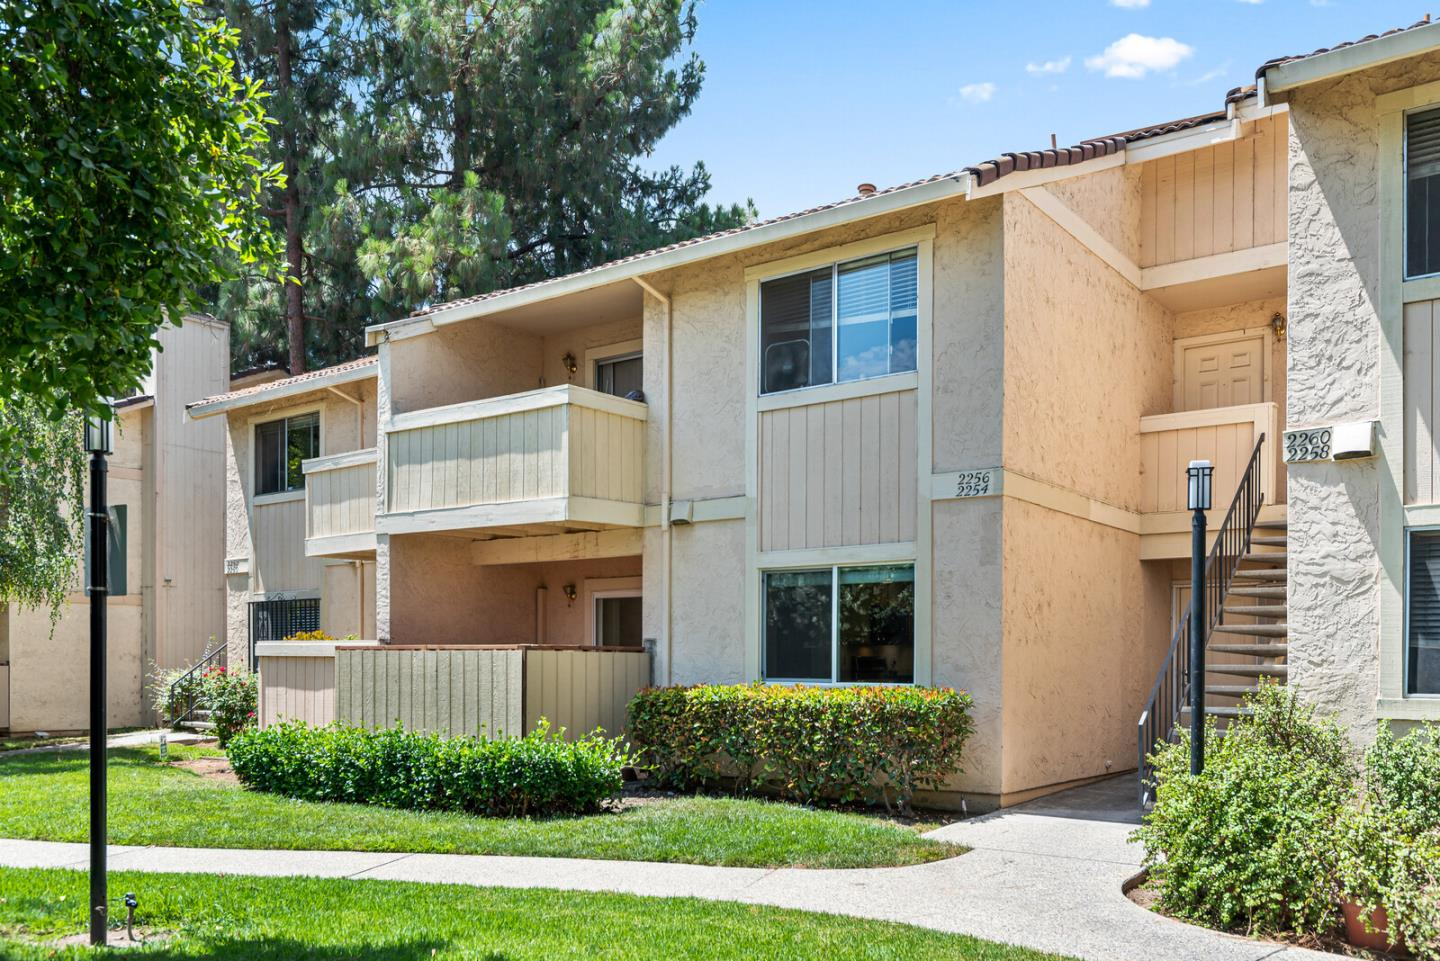 Gorgeously updated bright and airy downstairs unit, 2 Bedroom/ 2 Bathroom ready for immediate move-in! Original owner had many upgrades done. Open floor plan with private patio and patio storage. Air conditioned unit makes life cool. Many upgrades include newer remodeled kitchen, newer KitchenAid refrigerator, dishwasher, microwave. Are you a great cook? Your gas stove is ready for you! 2 updated full bathrooms, and newer installed laminated floors throughout the unit. Laundry in unit, washer and dryer included. Newer doubled paned windows, new paint, new water heater and closet organizers as well. Two assigned parking spaces (one carport covered, one open) visible from your bedrooms. Community swimming pool with facility room. Walk to the Regional Medical Center and a wide variety of local shops and restaurants. Easy access to 280, 680, 101 freeways, hospital/clinic, schools and surrounding stores and public transportation.